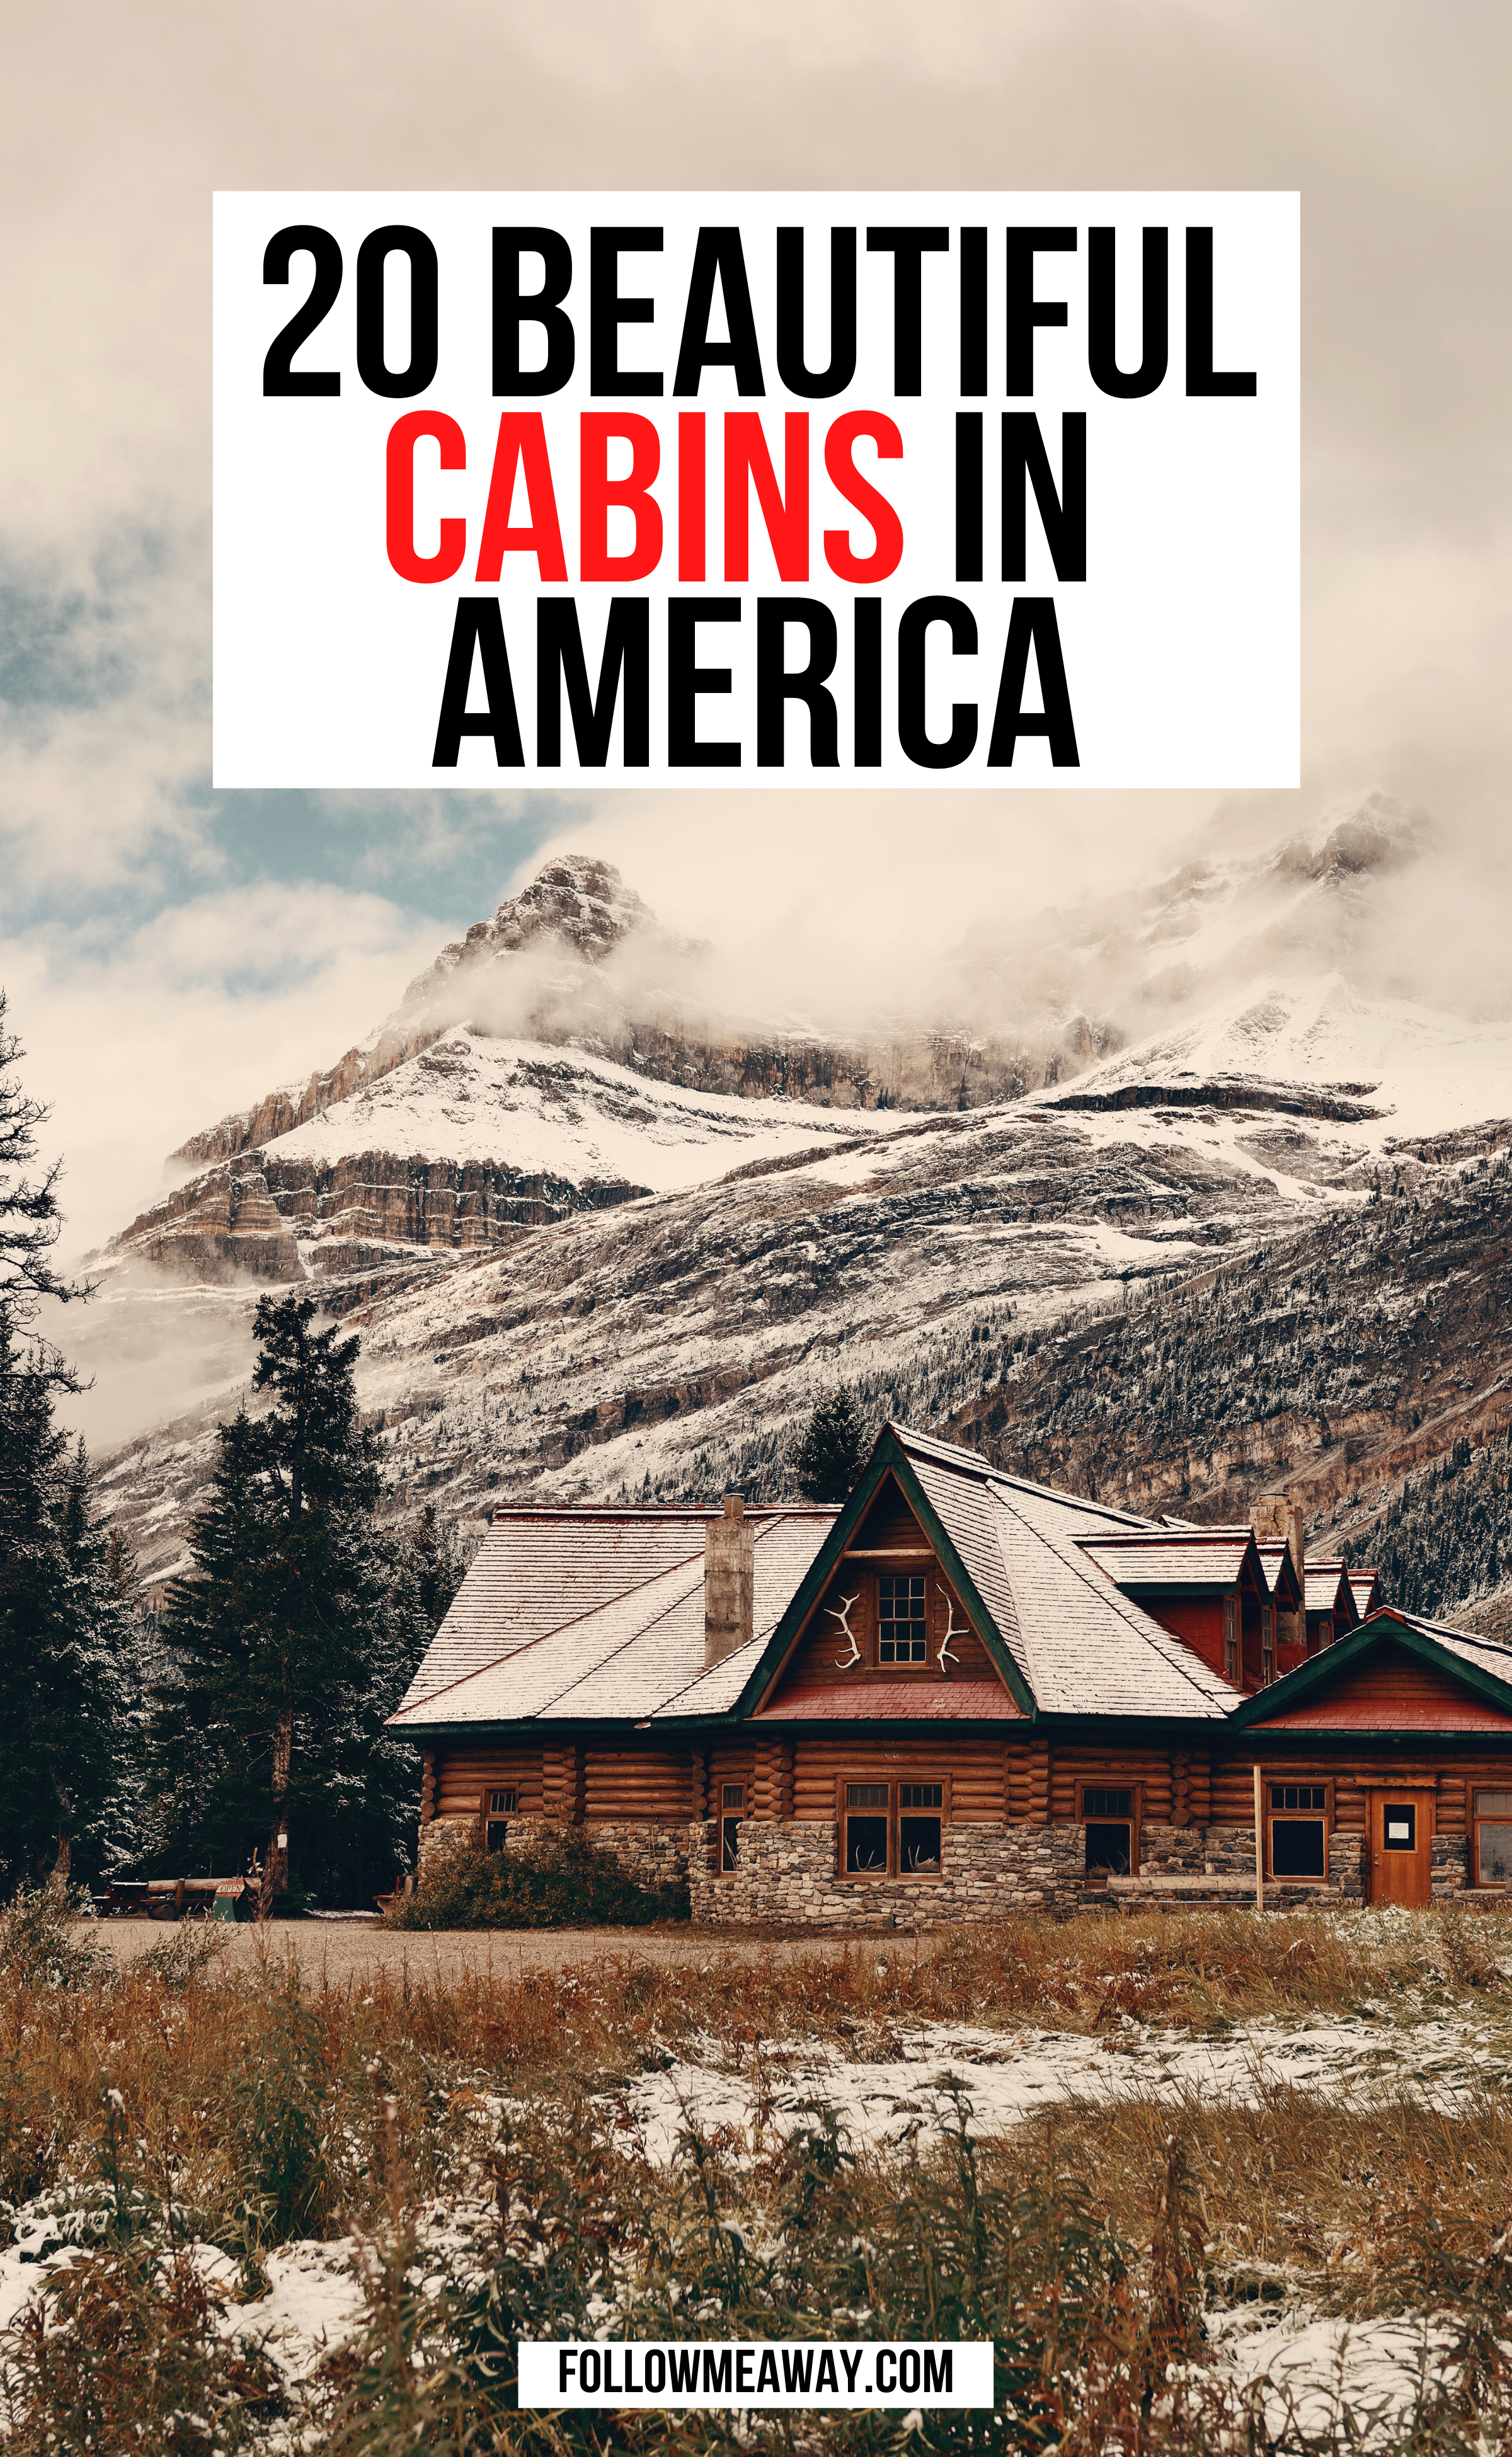 20 coolest cabins in the USA for your bucket list | best cabin getaways in america | best cabin getaways in america | best cabins in USA | where to stay in USA | romantic cabin getaways in the usa | coolest cabins in the united states #cabins #cabincrew #cabinideas #cabininthewoods #airbnb #usa #american